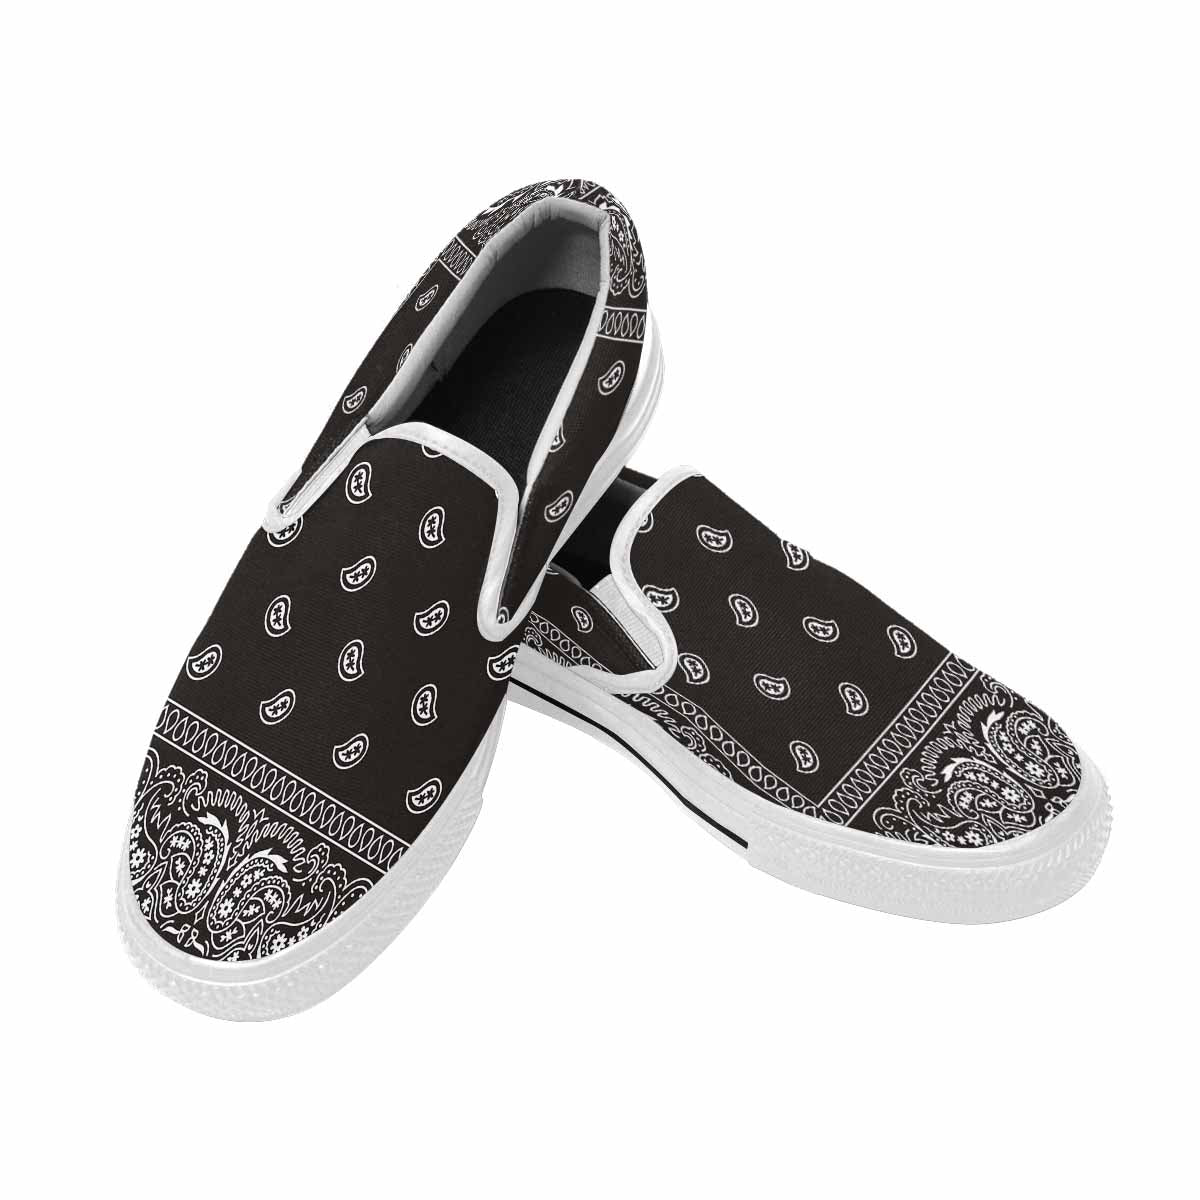 WOMEN'S BANDANA PRINT SLIP-ON VANS - BLACK